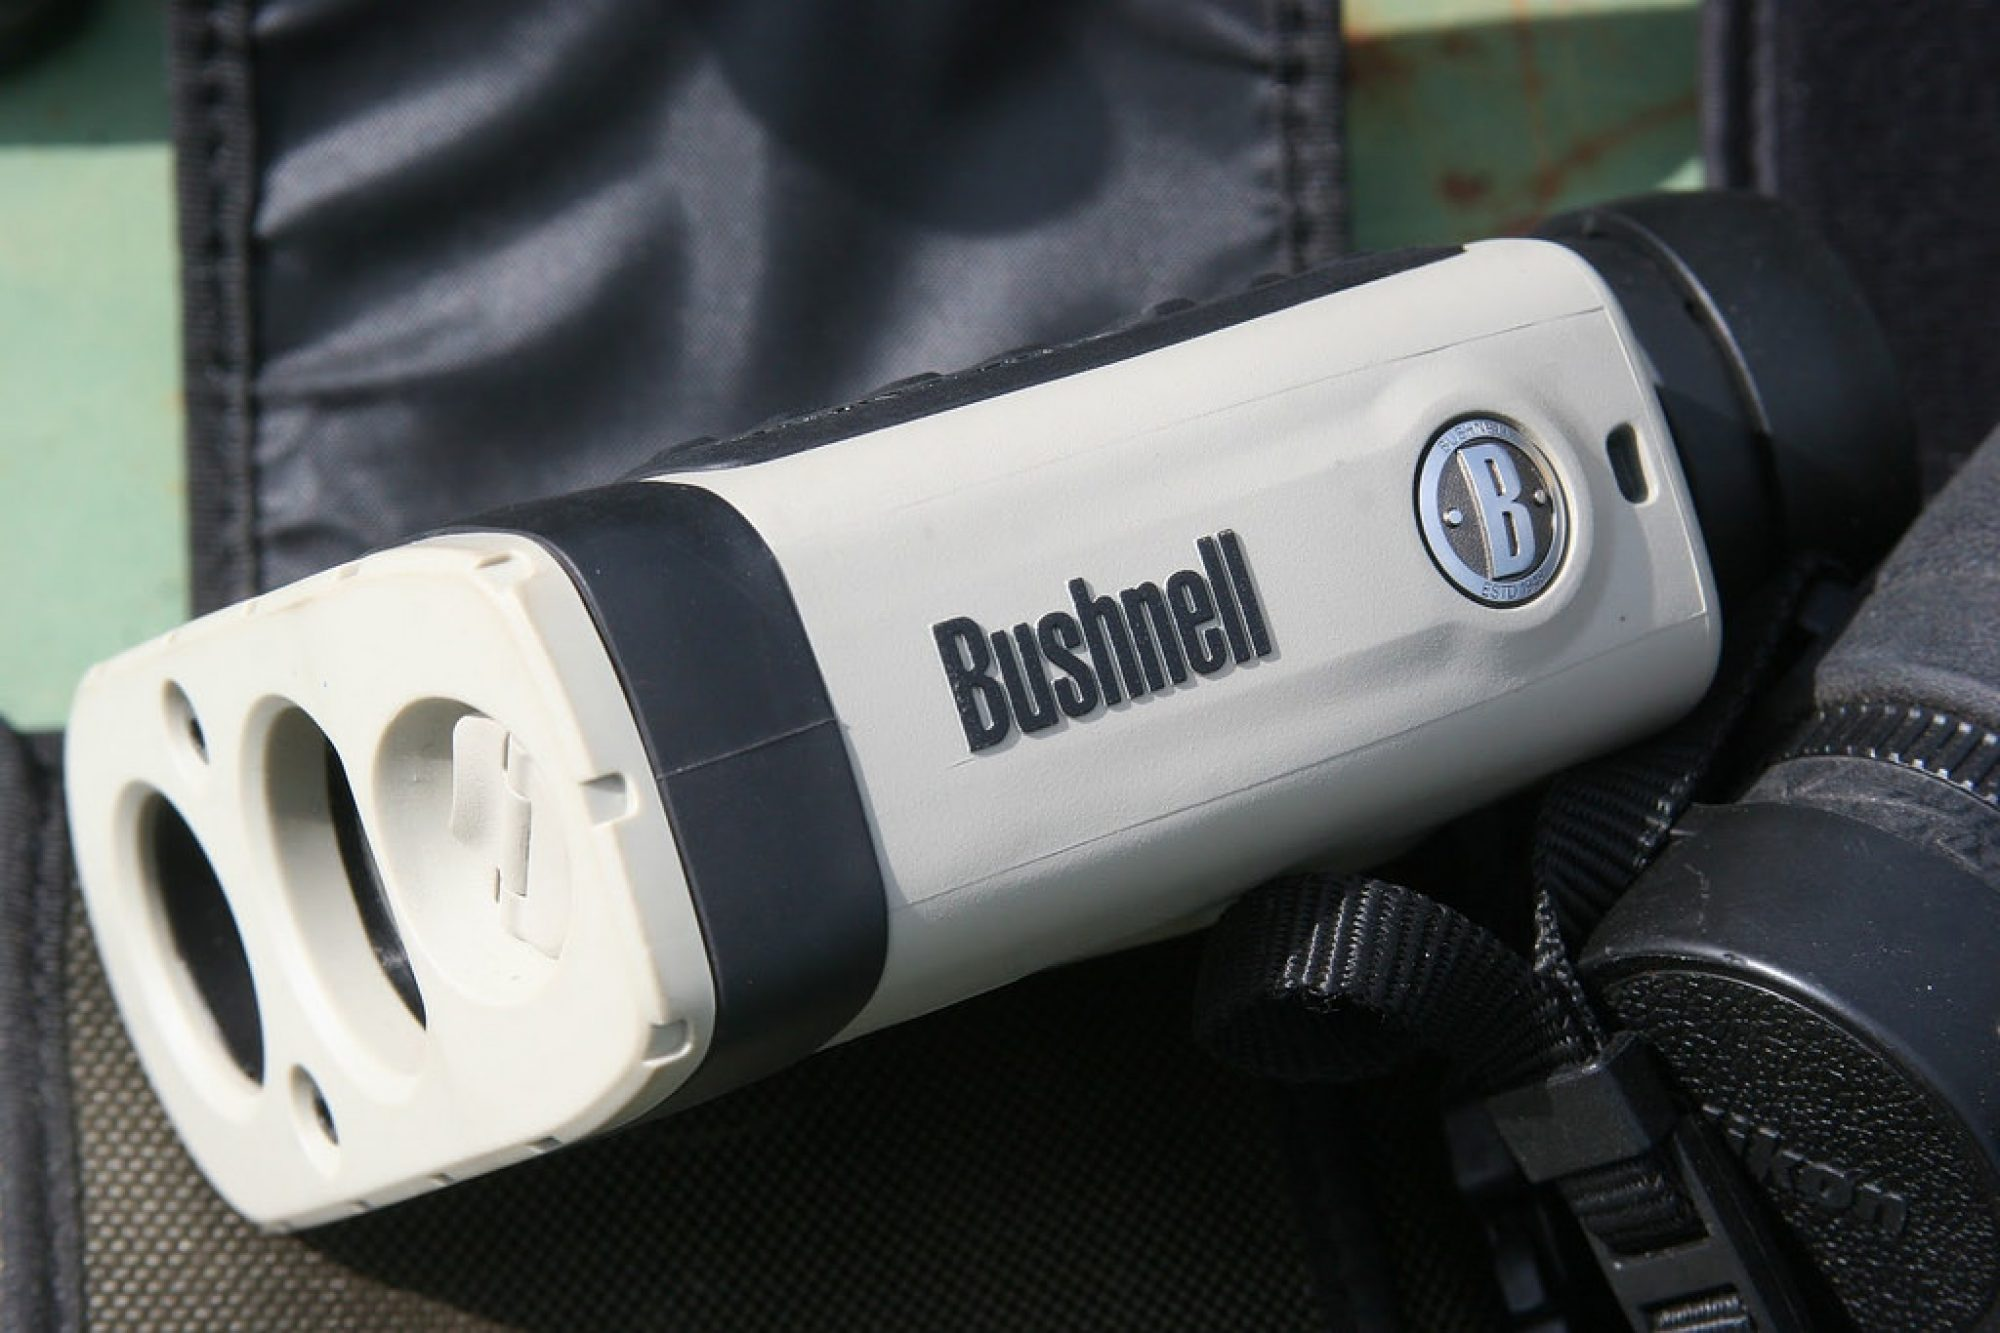 Bushnell Golf Rangefinder - Best Golf Courses for Tree Services, Nutritionists, and Floor Cleaners